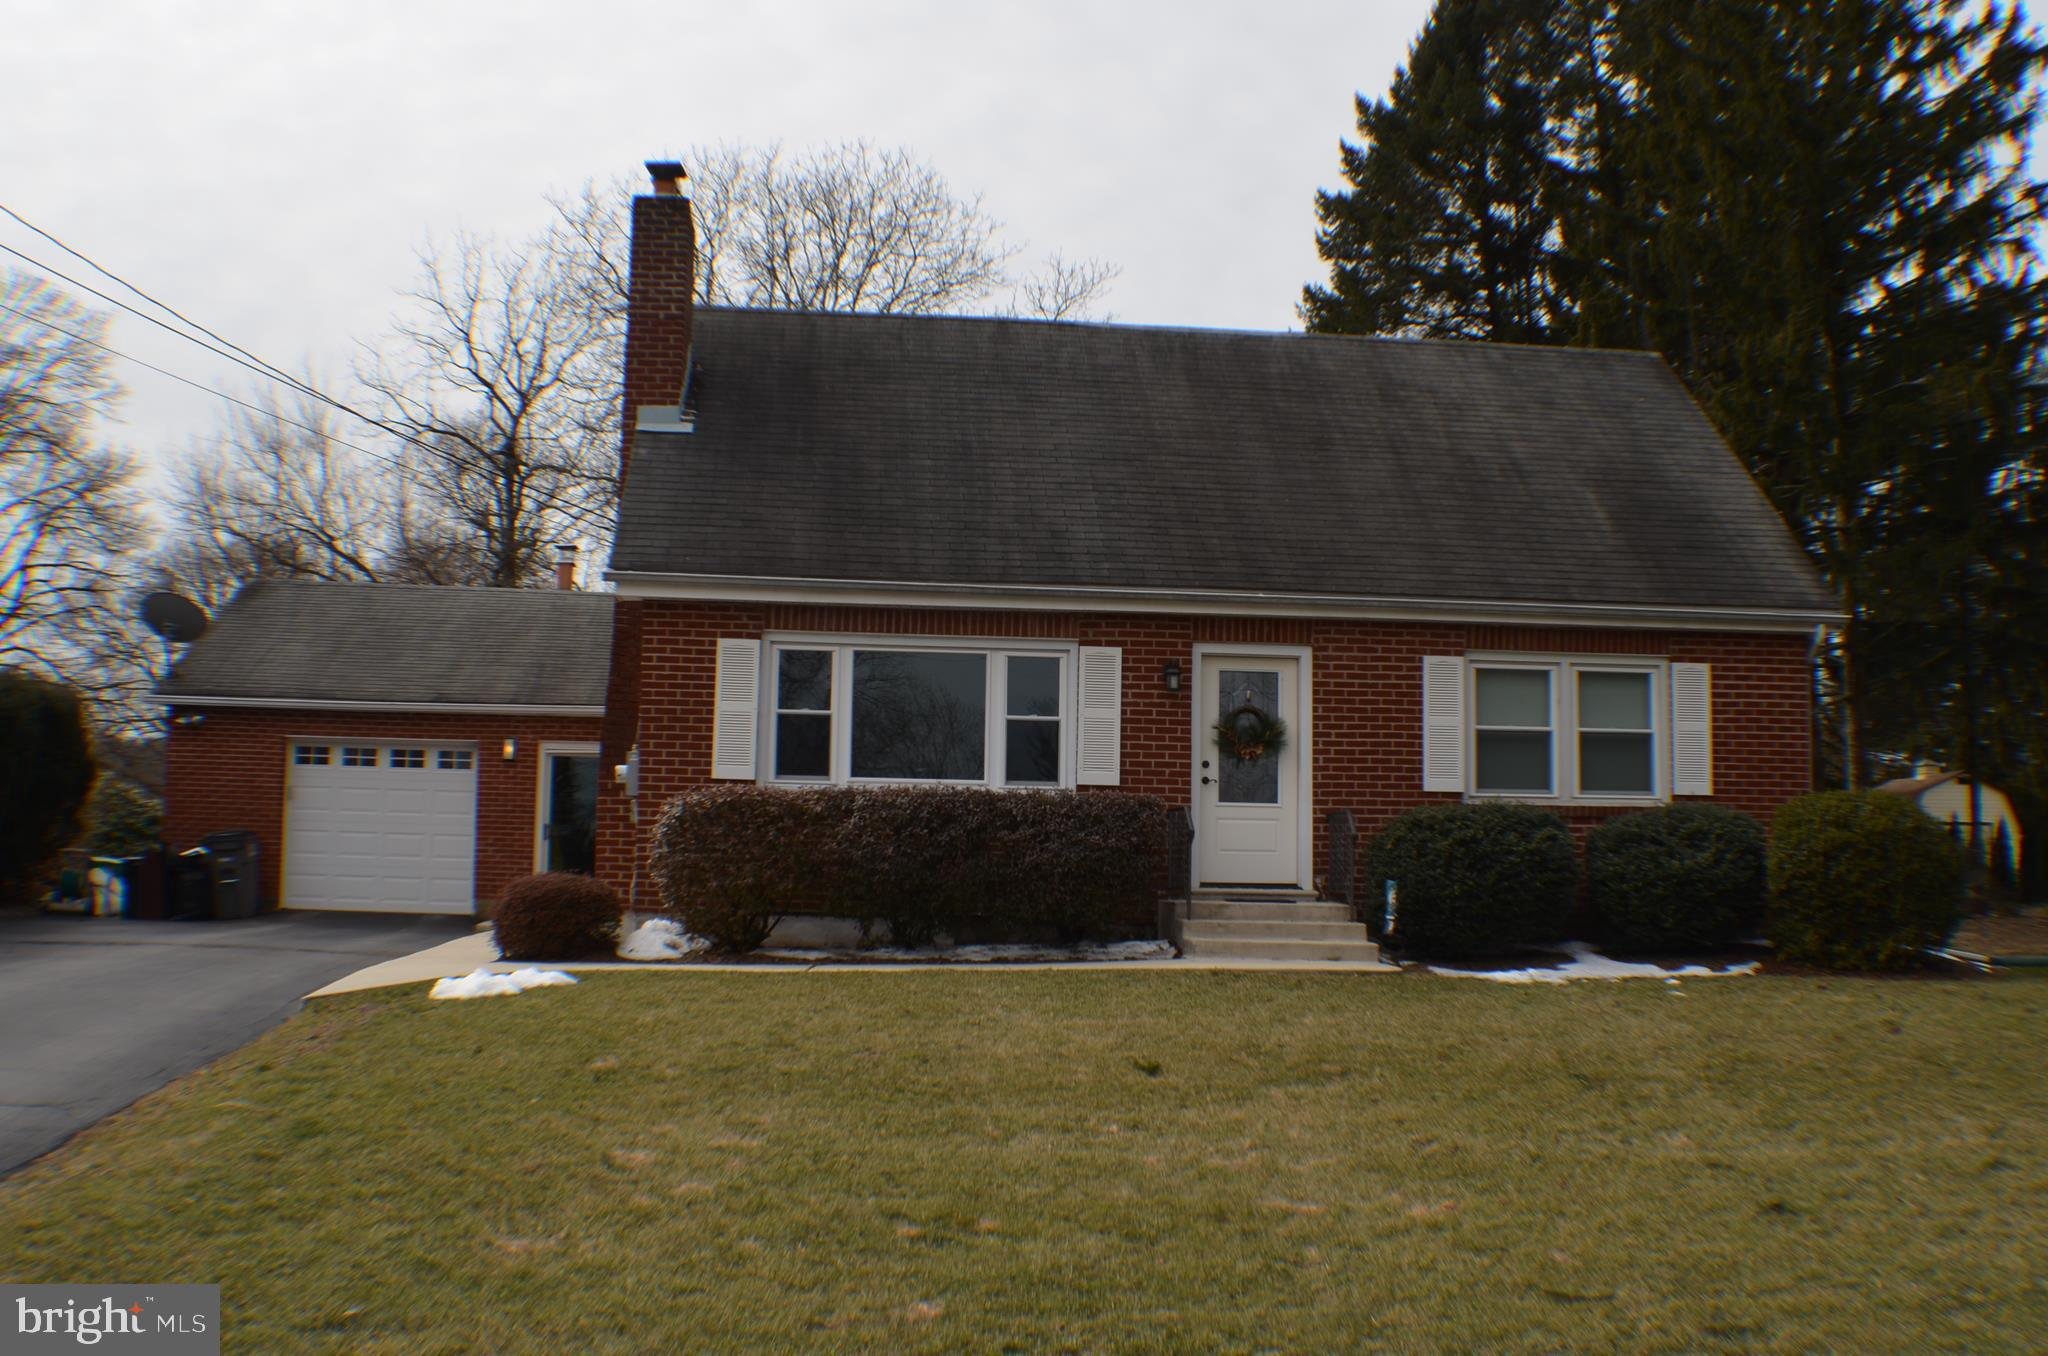 4842 CHERRY LANE, CENTER VALLEY, PA 18034